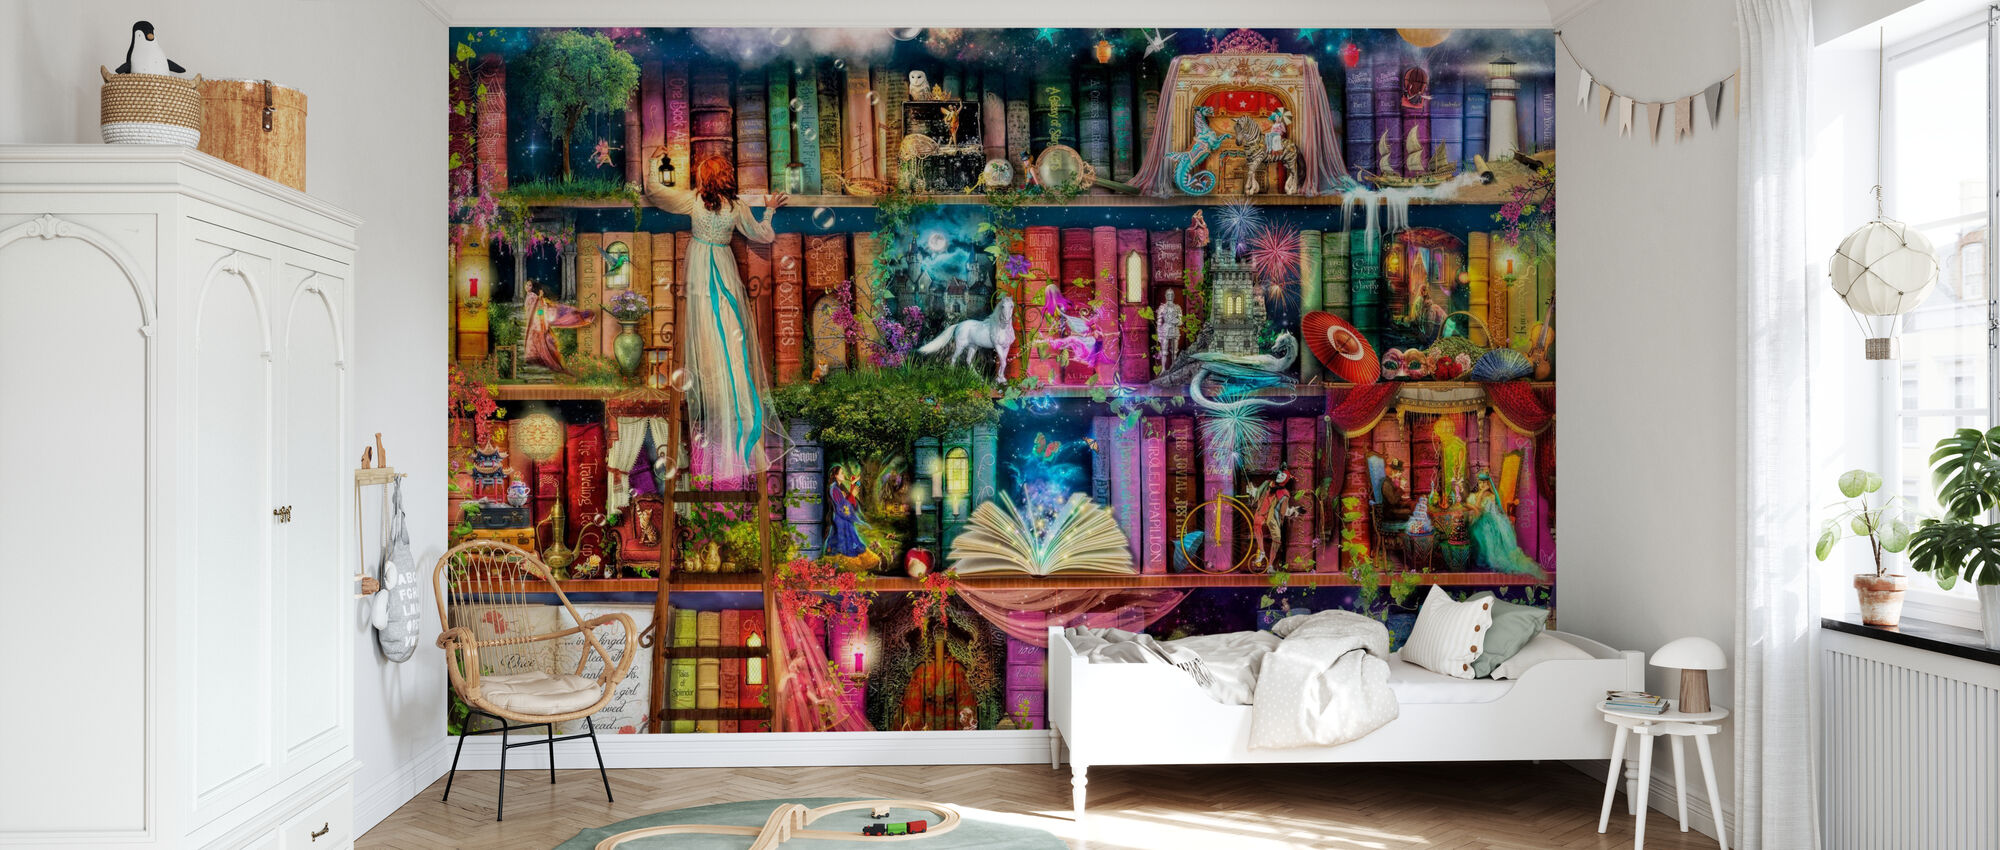 Treasure Hunt Book Shelf - Wallpaper - Kids Room